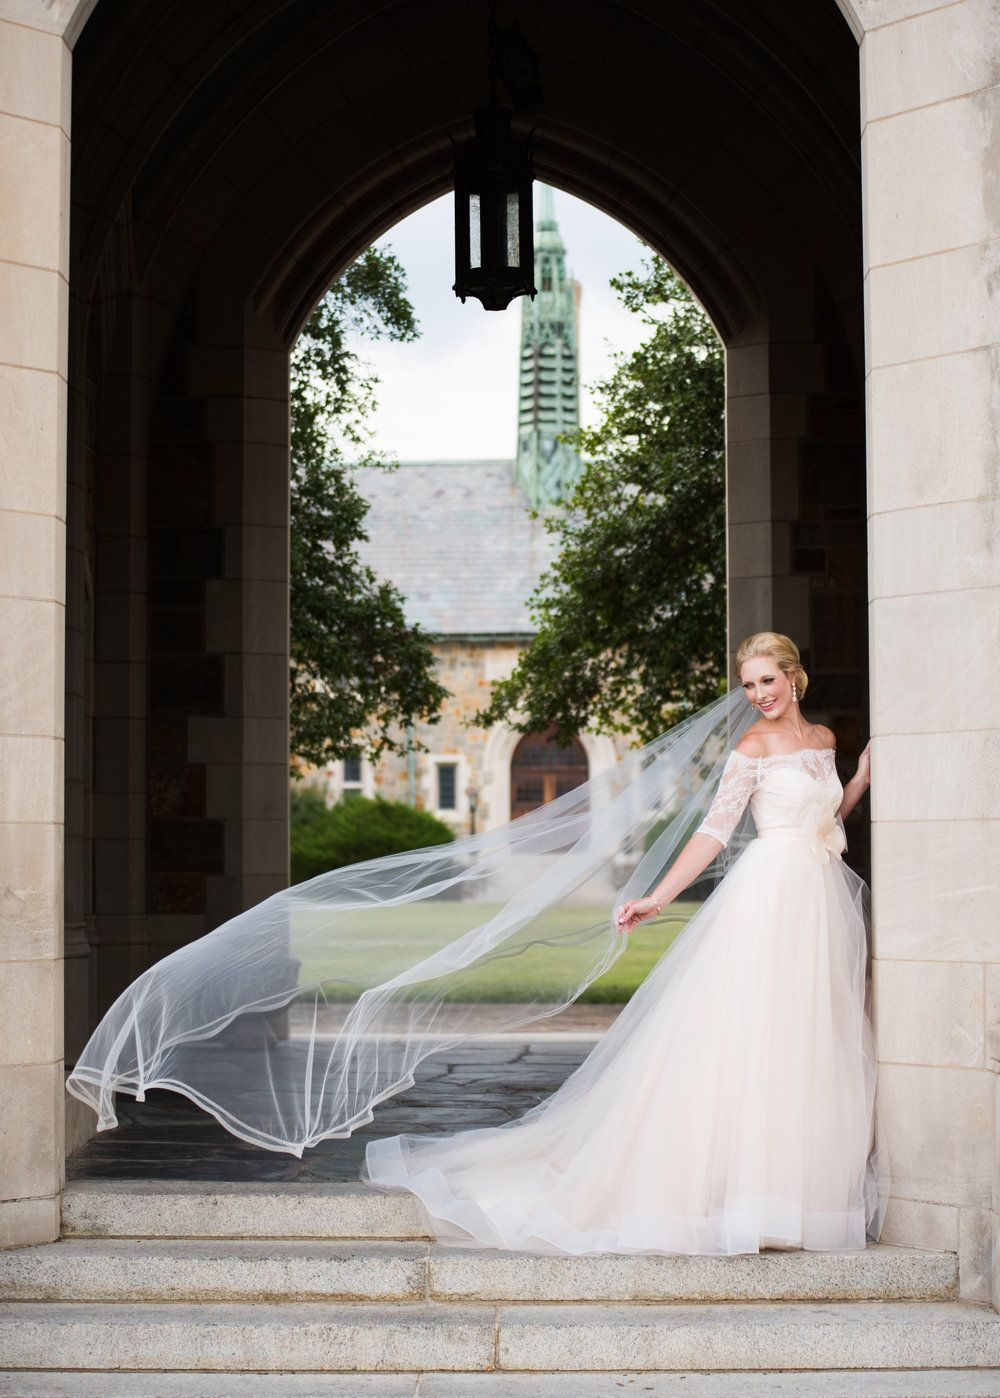 Berry College Bridal Session //Bridal Session Inspiration //Kristin Faye Photography